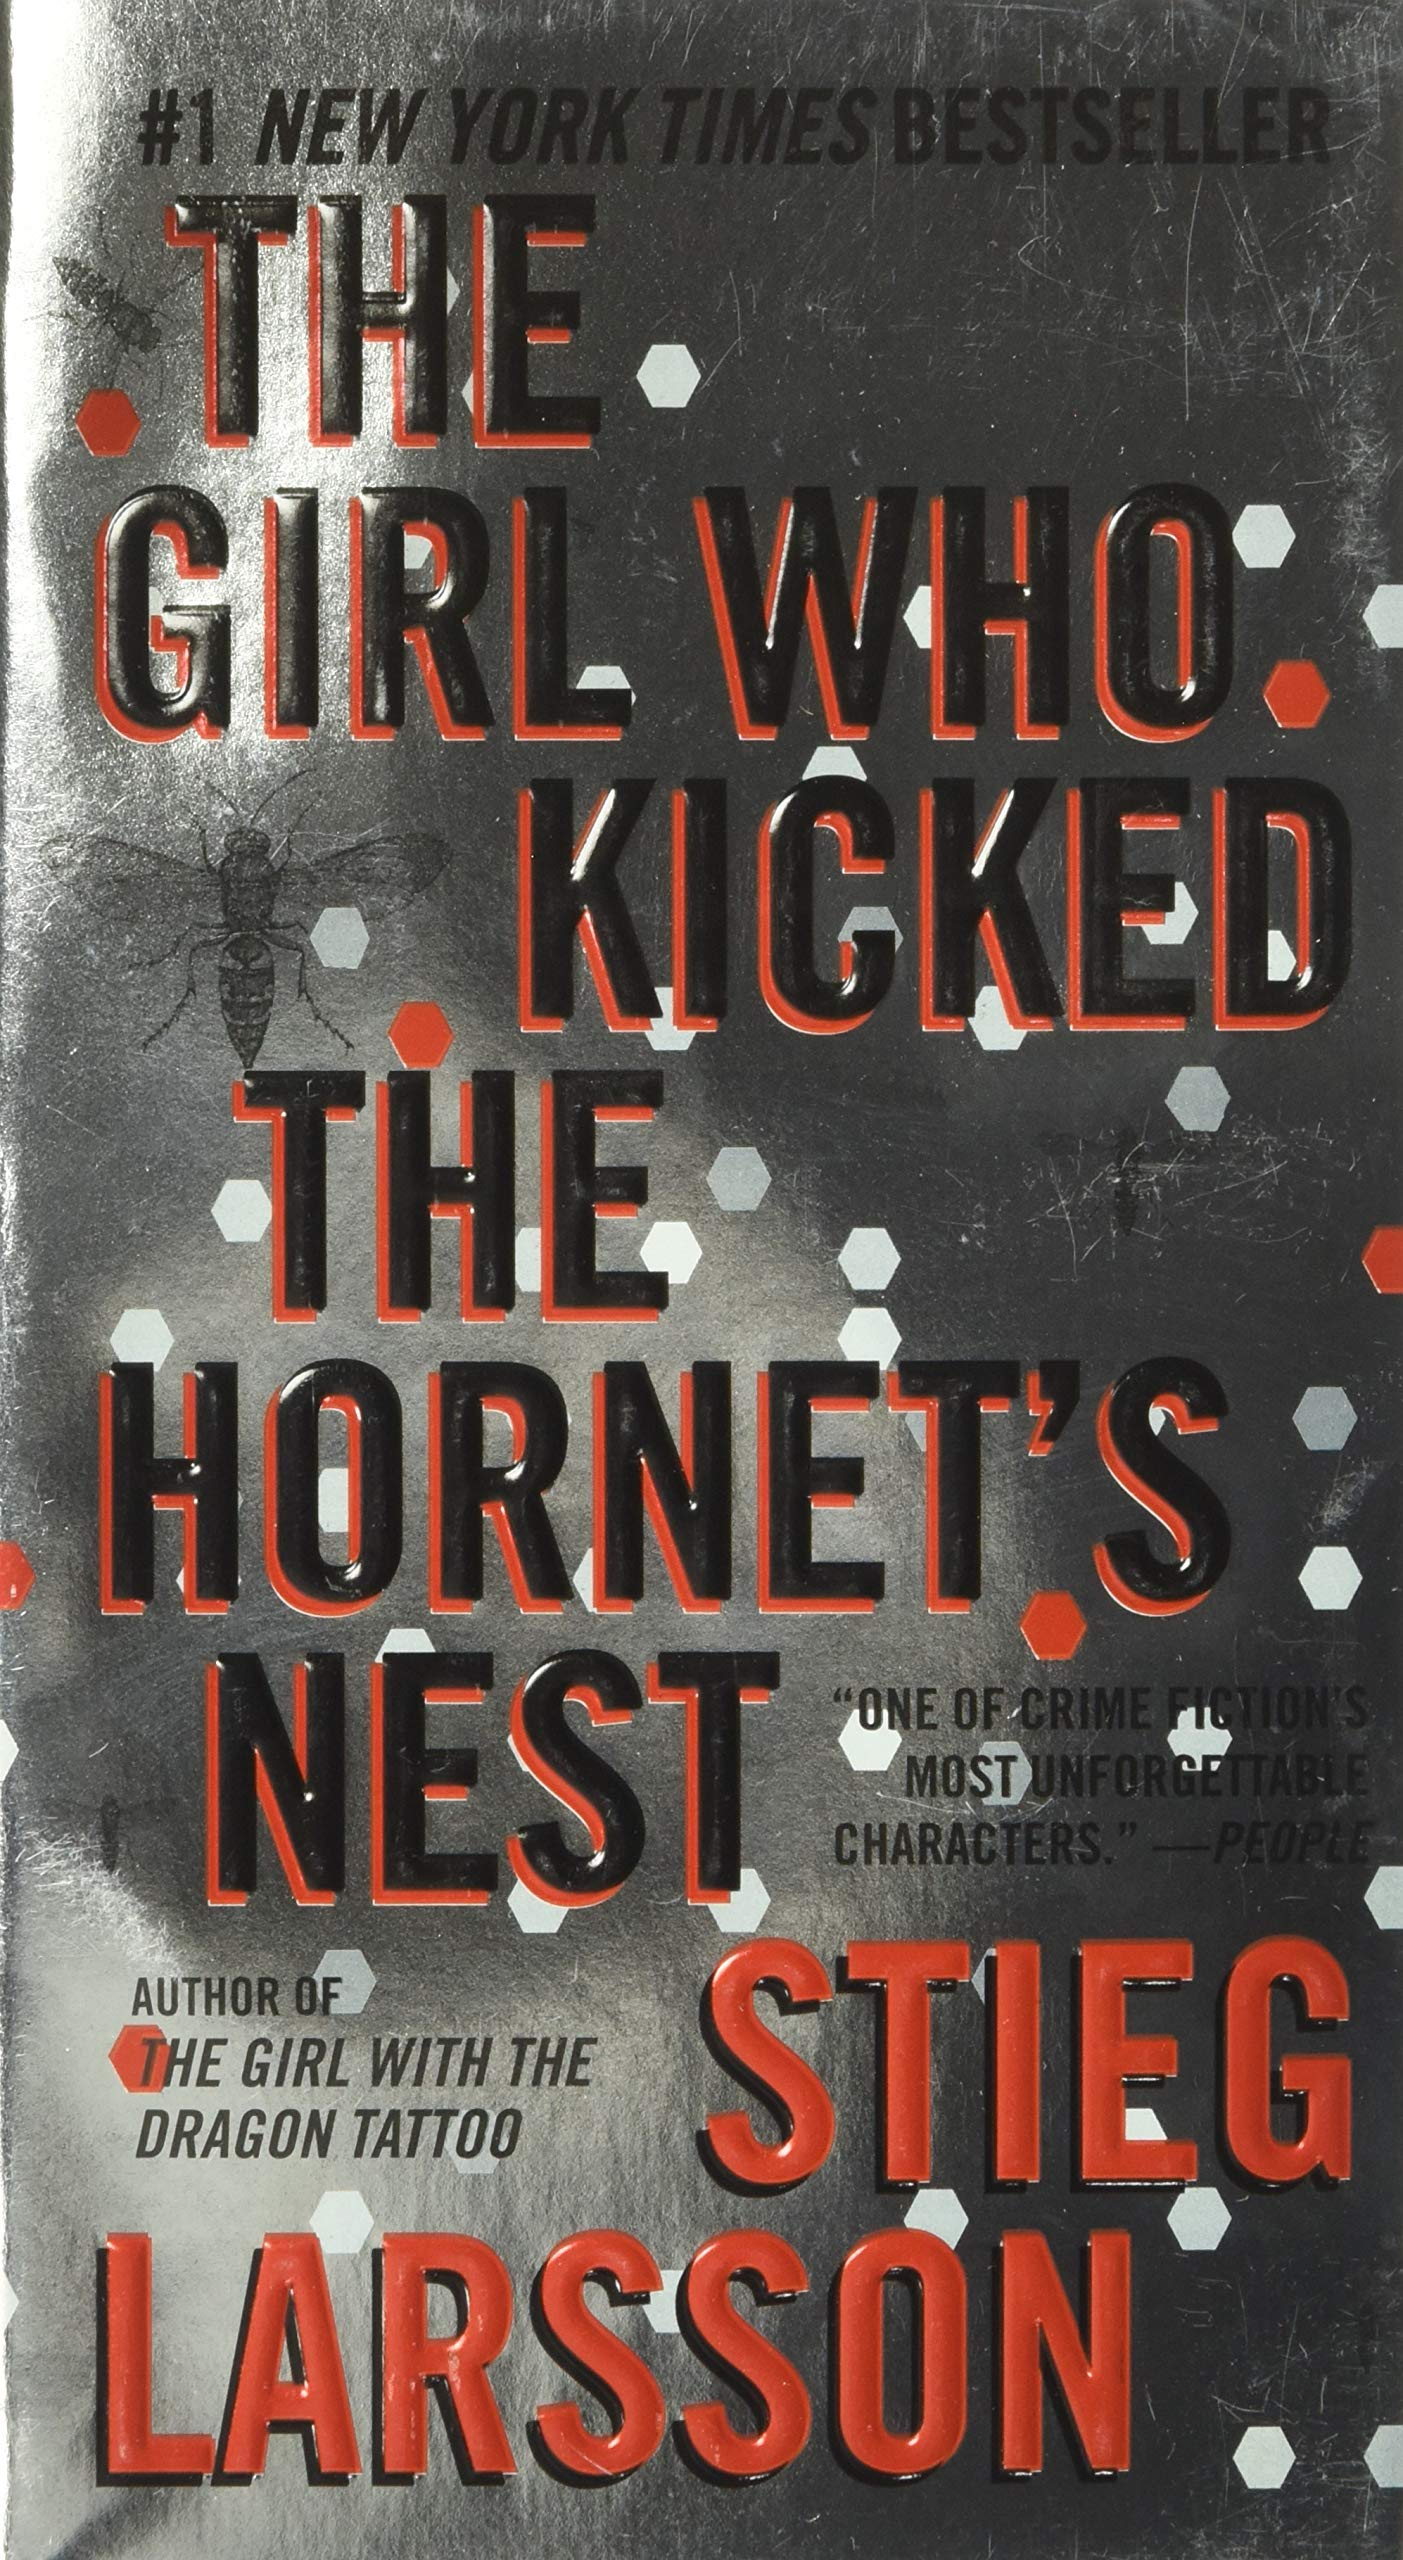 Amazon fr - The Girl Who Kicked the Hornet's Nest - Stieg Larsson